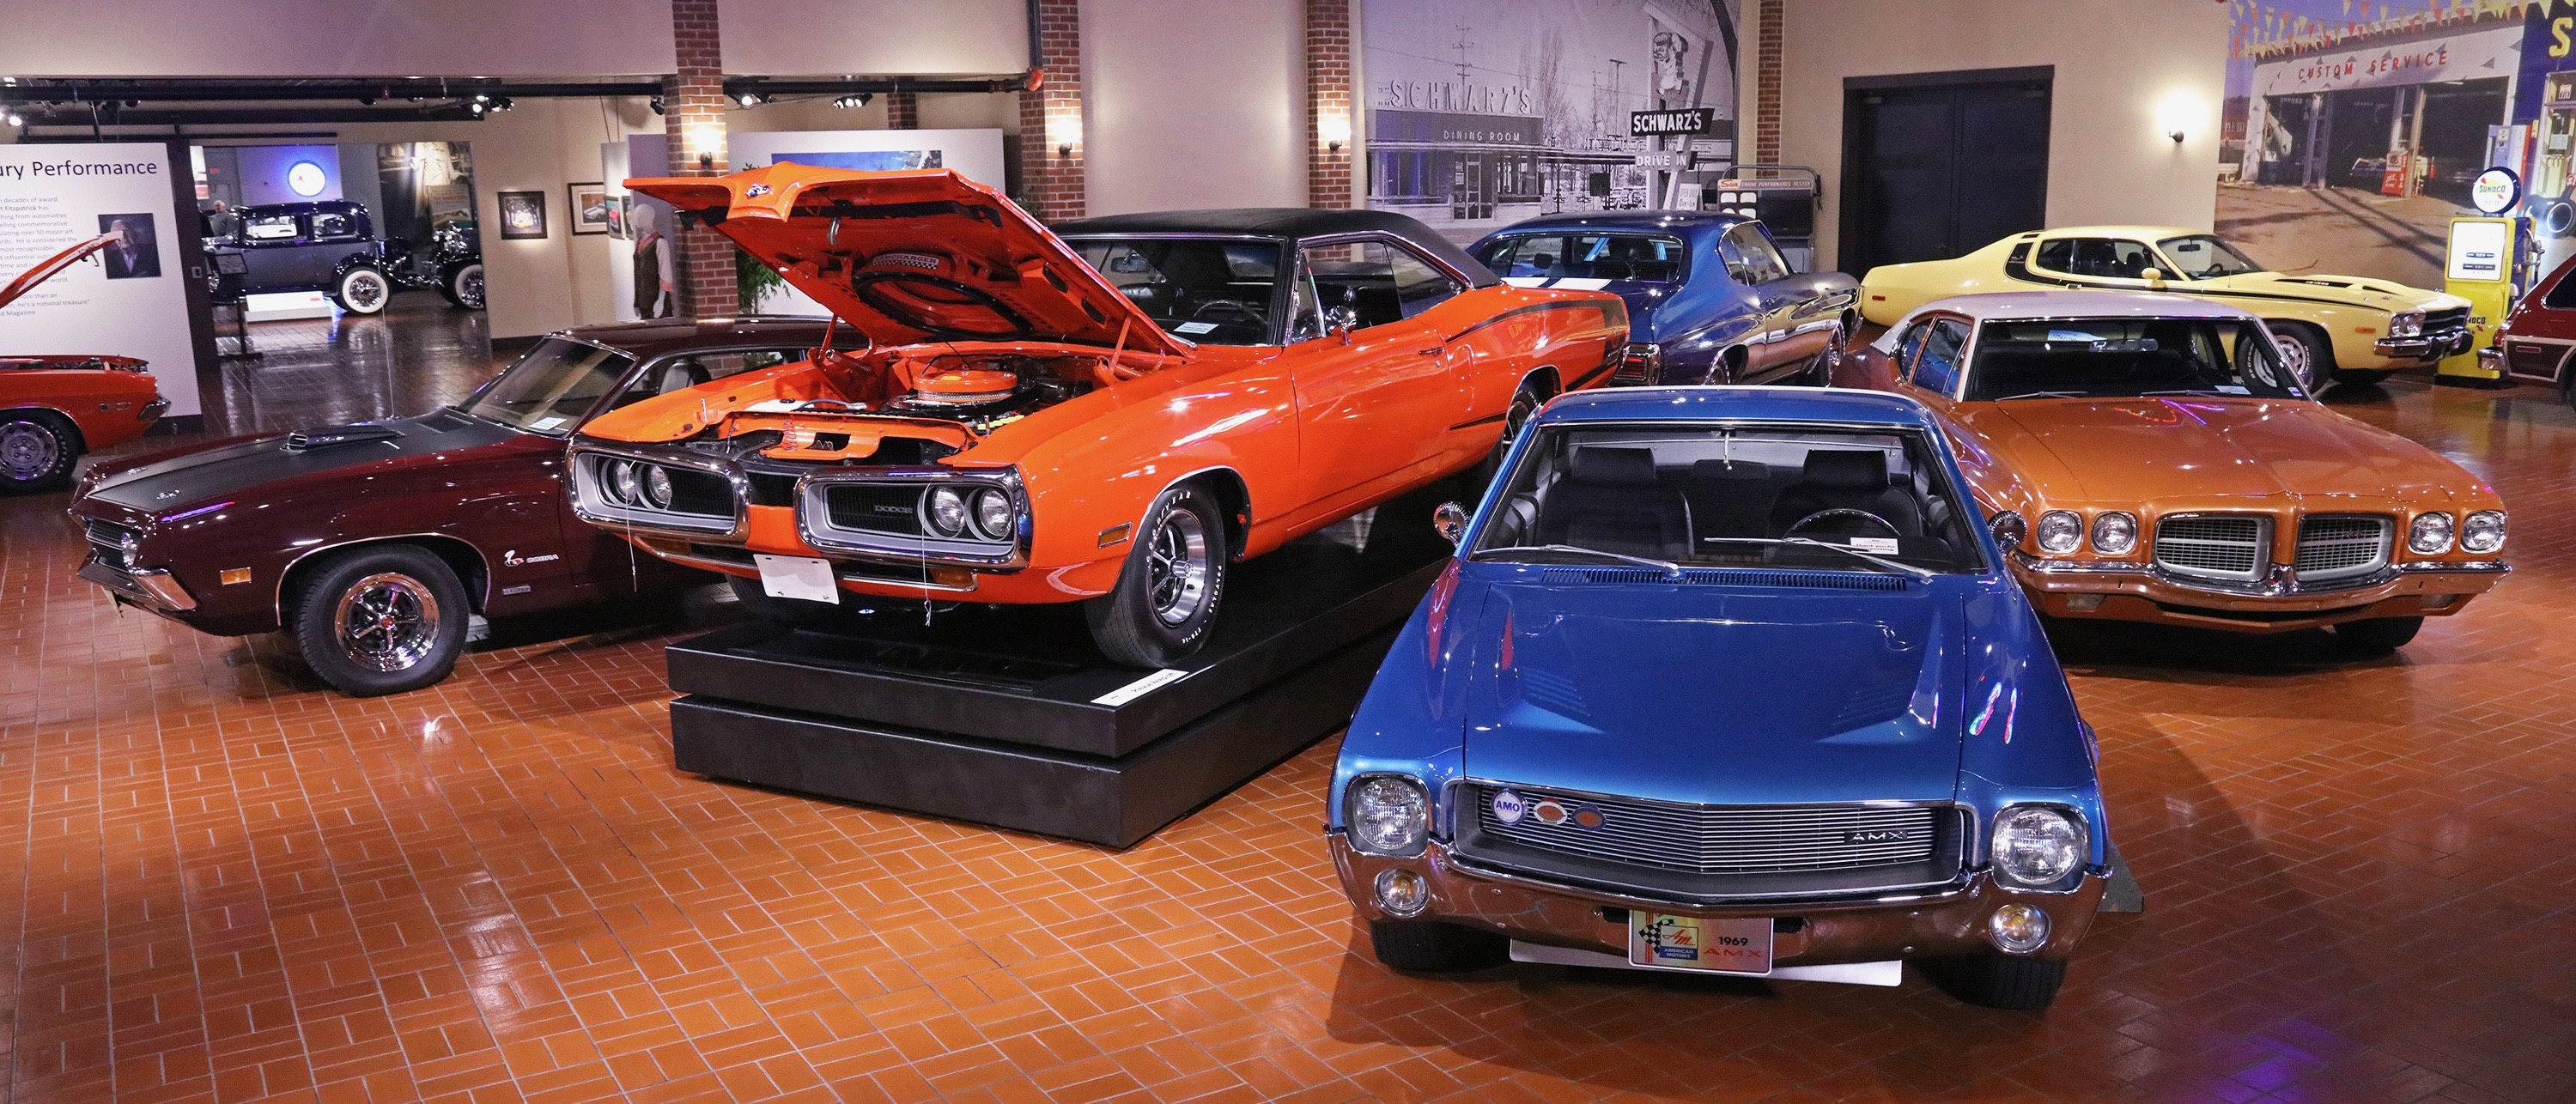 Muscle cars featured in 2018 at the Gilmore museum | ClassicCars.com